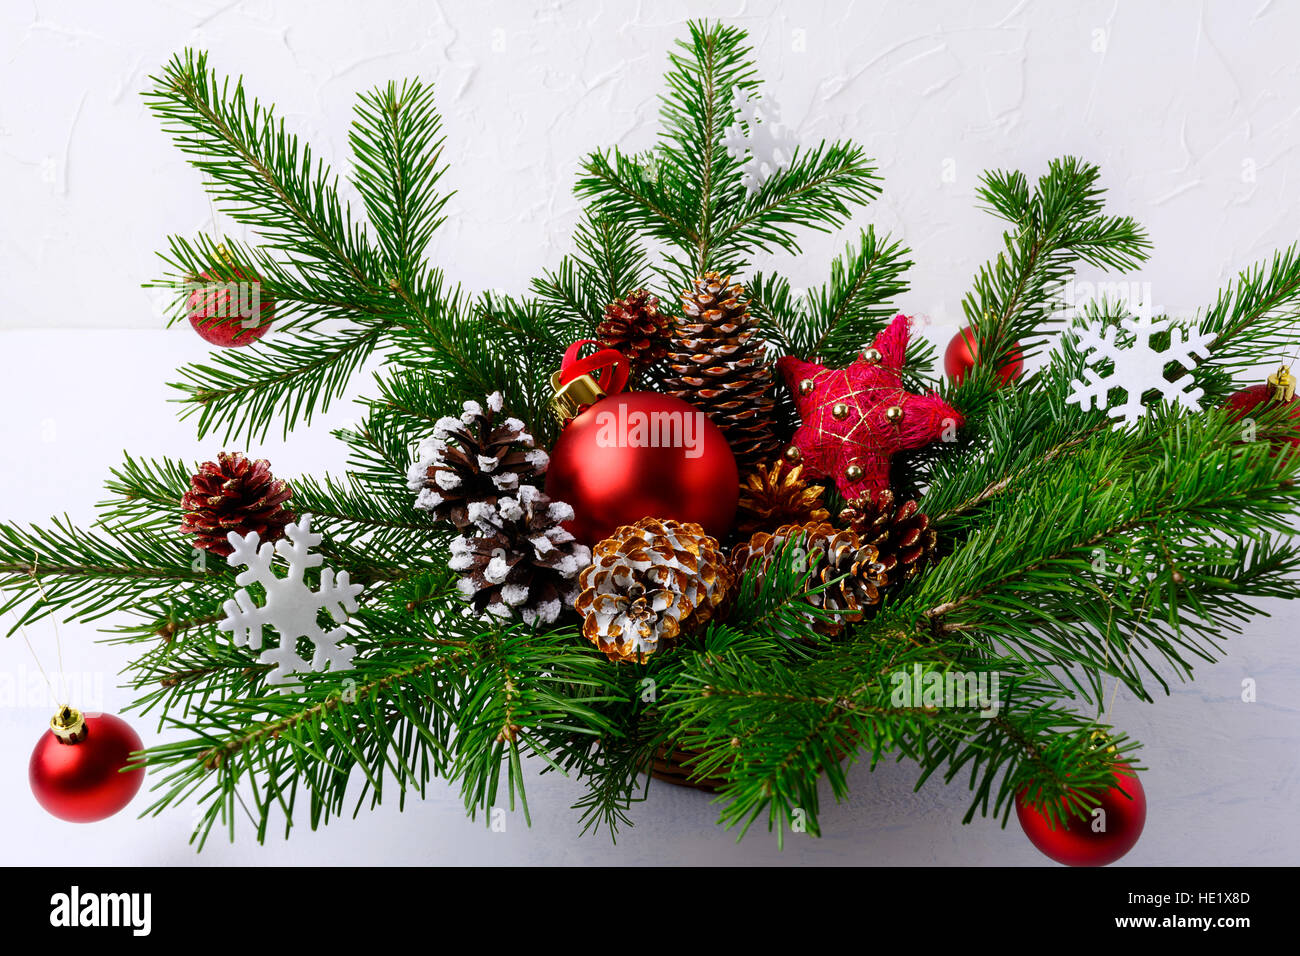 Christmas Greenery Centerpieces.Christmas Table Centerpiece With Red Balls And Hand